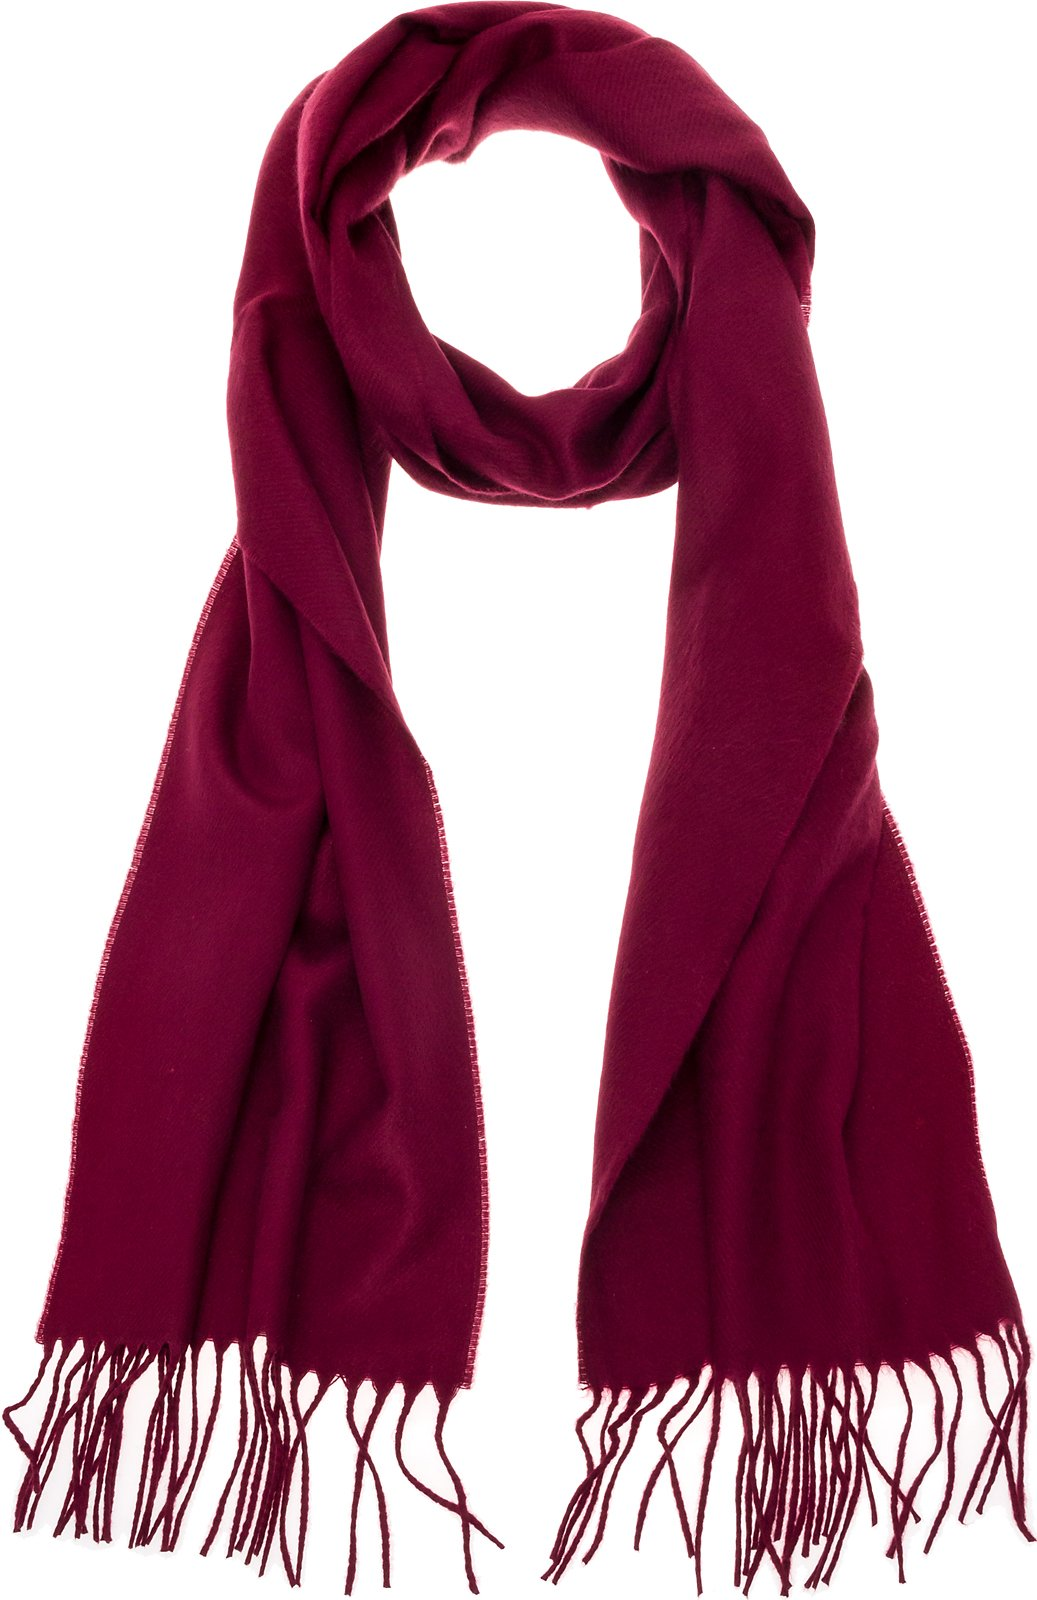 100% Cashmere Wool Scarf - Super Soft 12'' x 64.5'' Shawl Wrap w/Gift Box for Women and Men, Burgundy